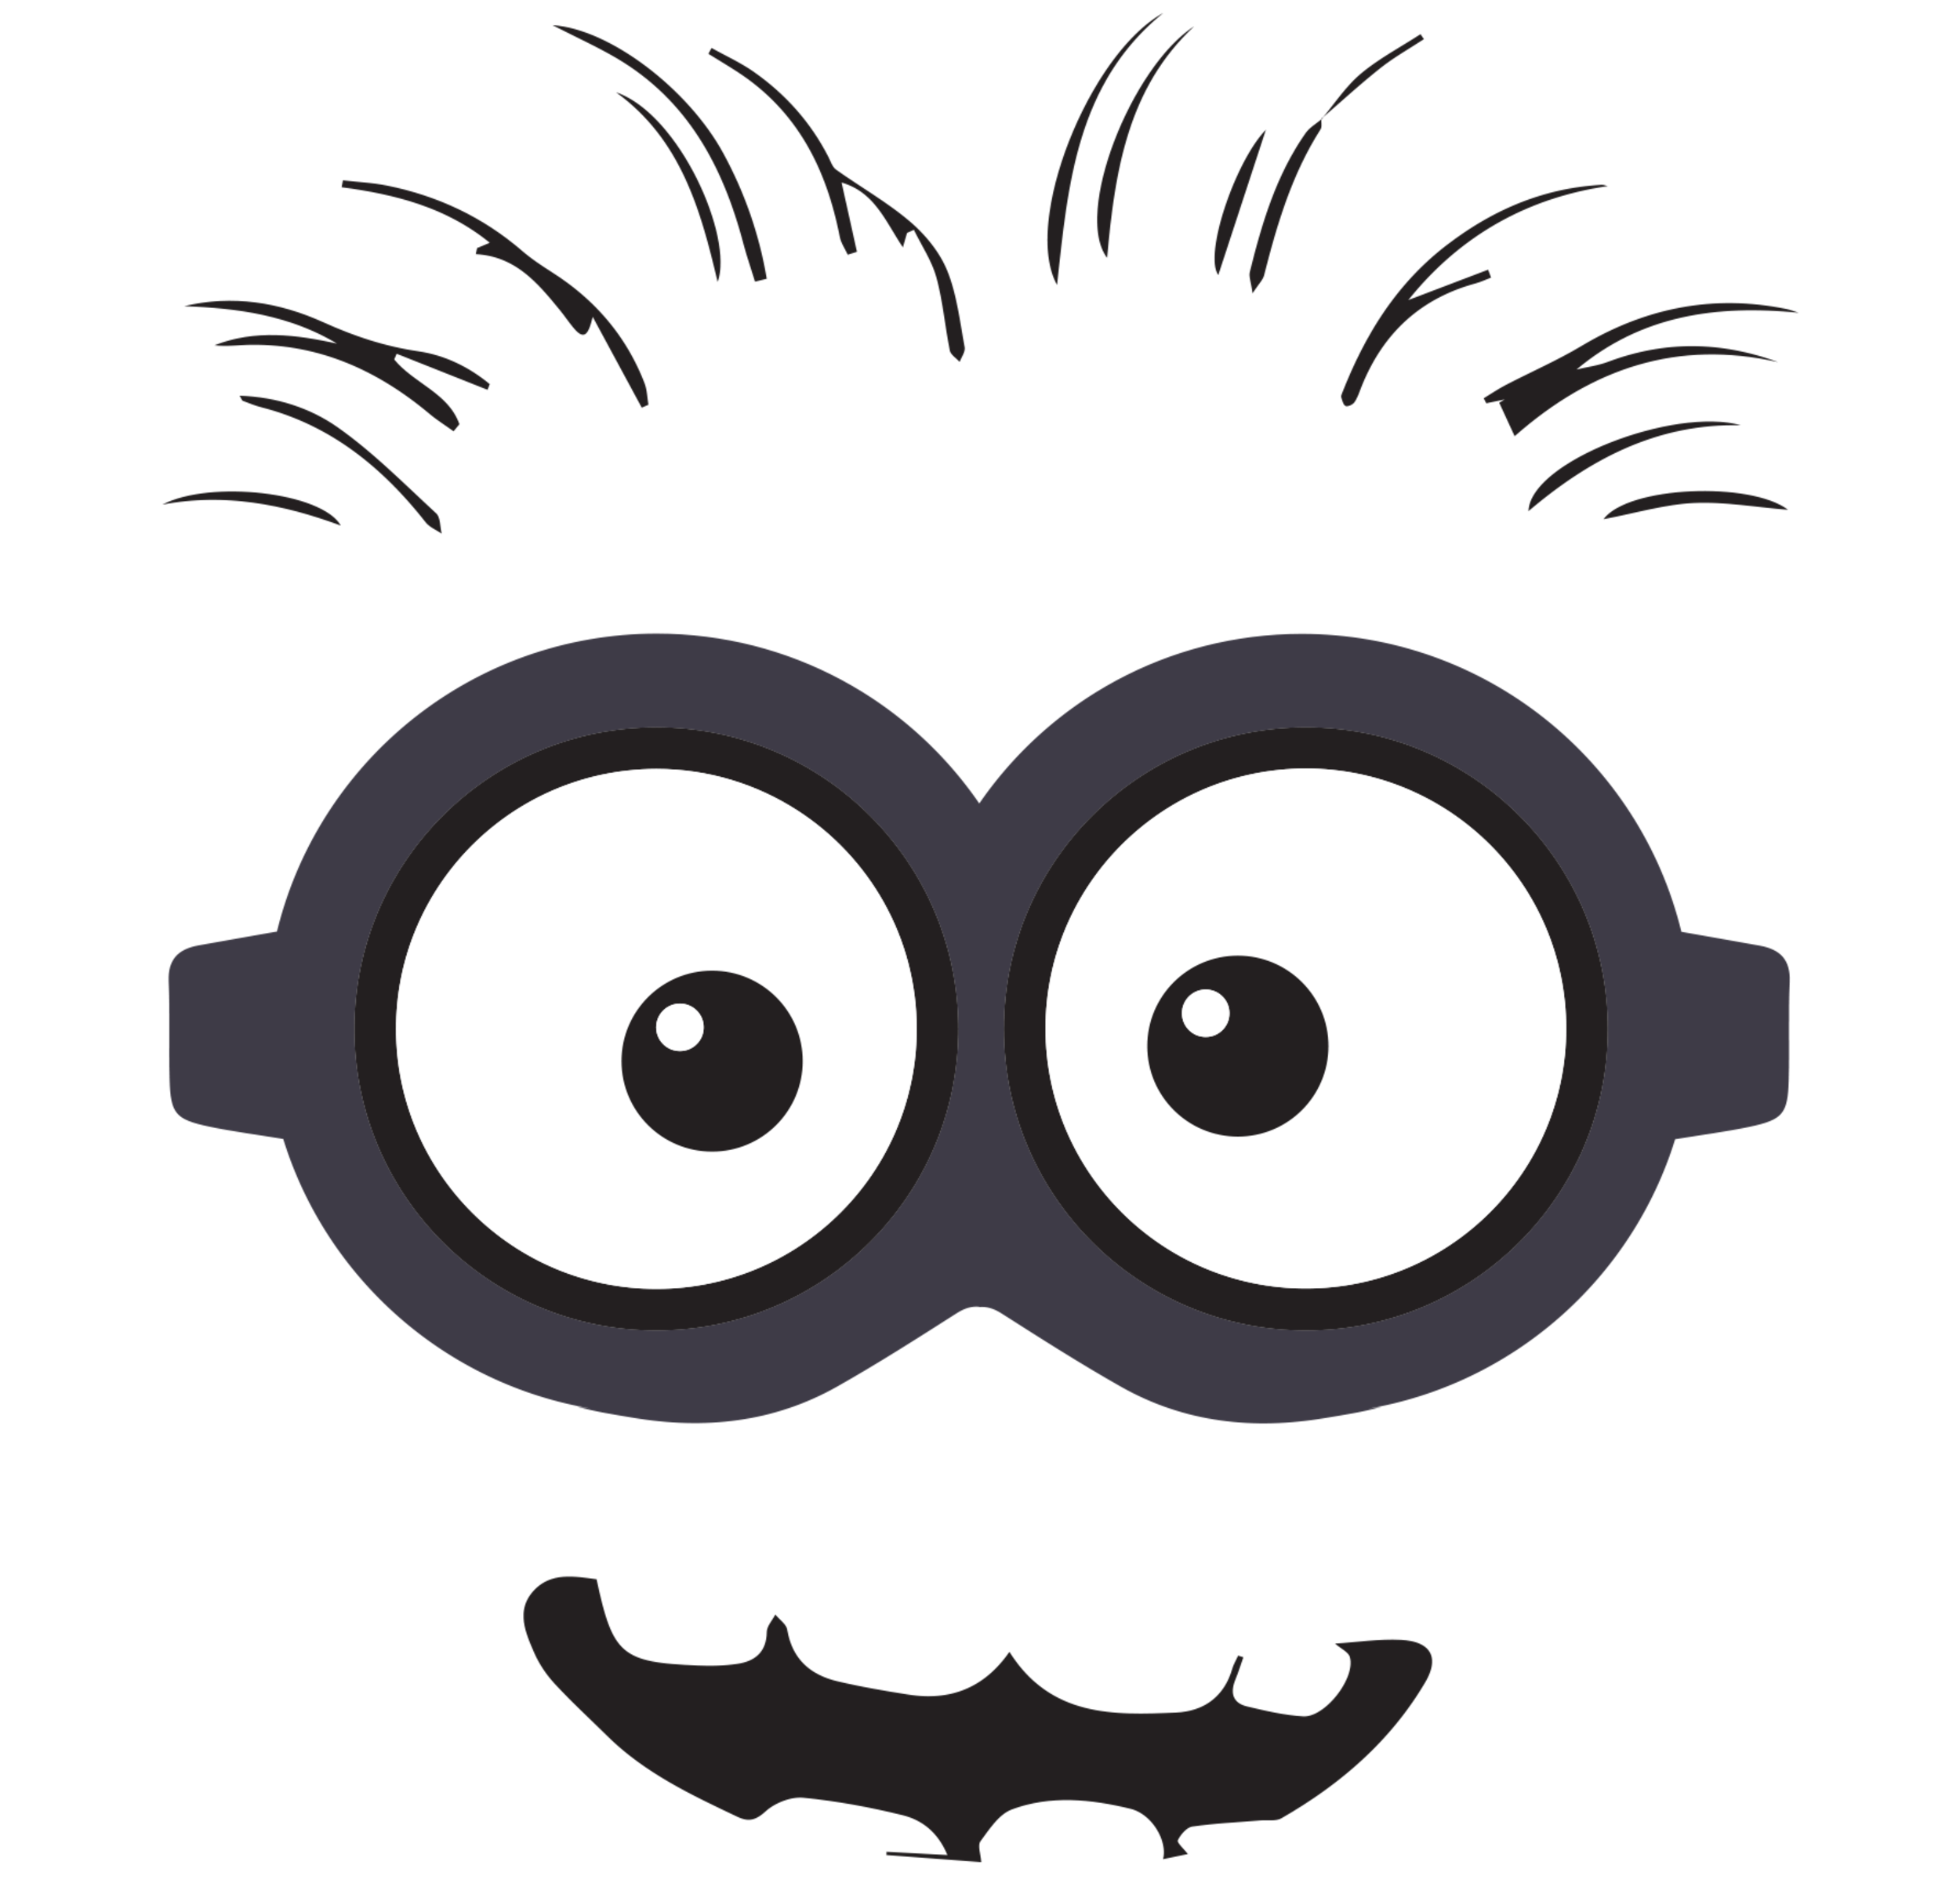 clipart library download Clip art free back. Hair clipart minion